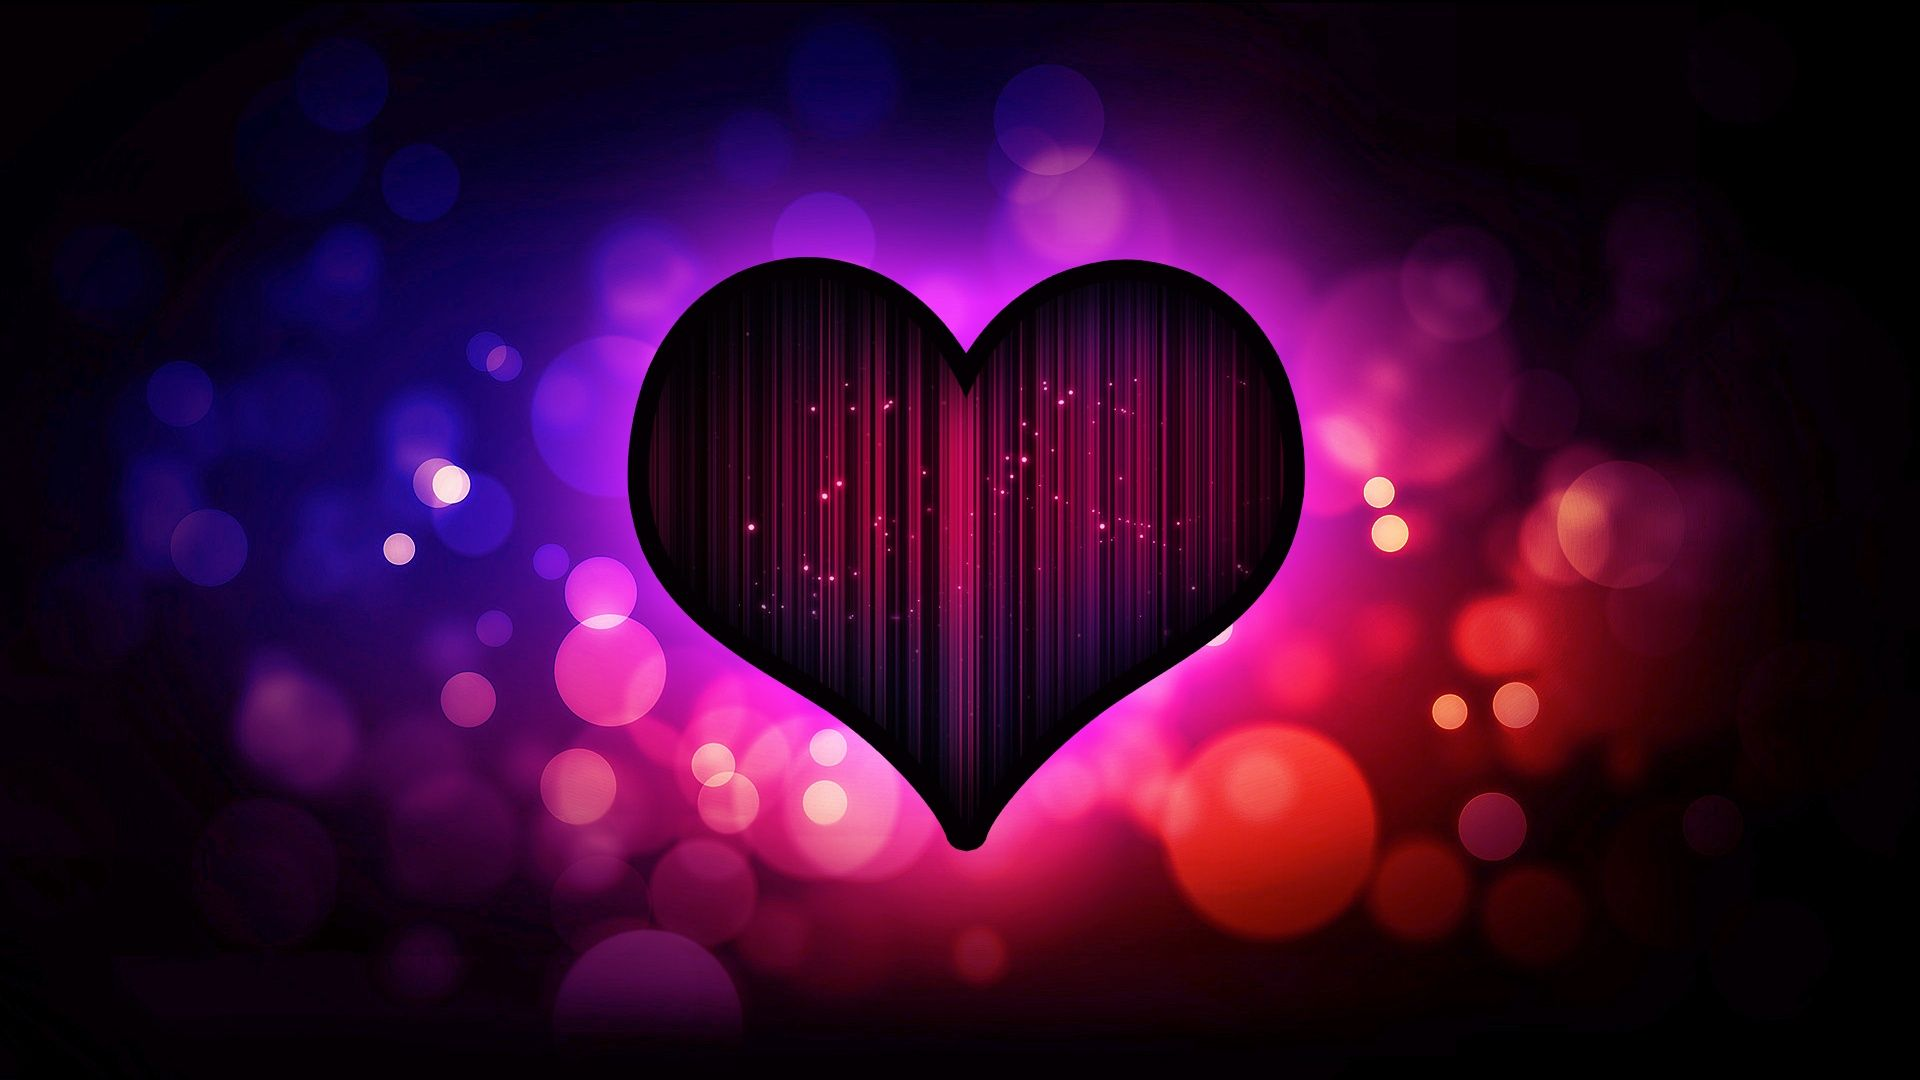 Hd Wallpaper Of Love Heart